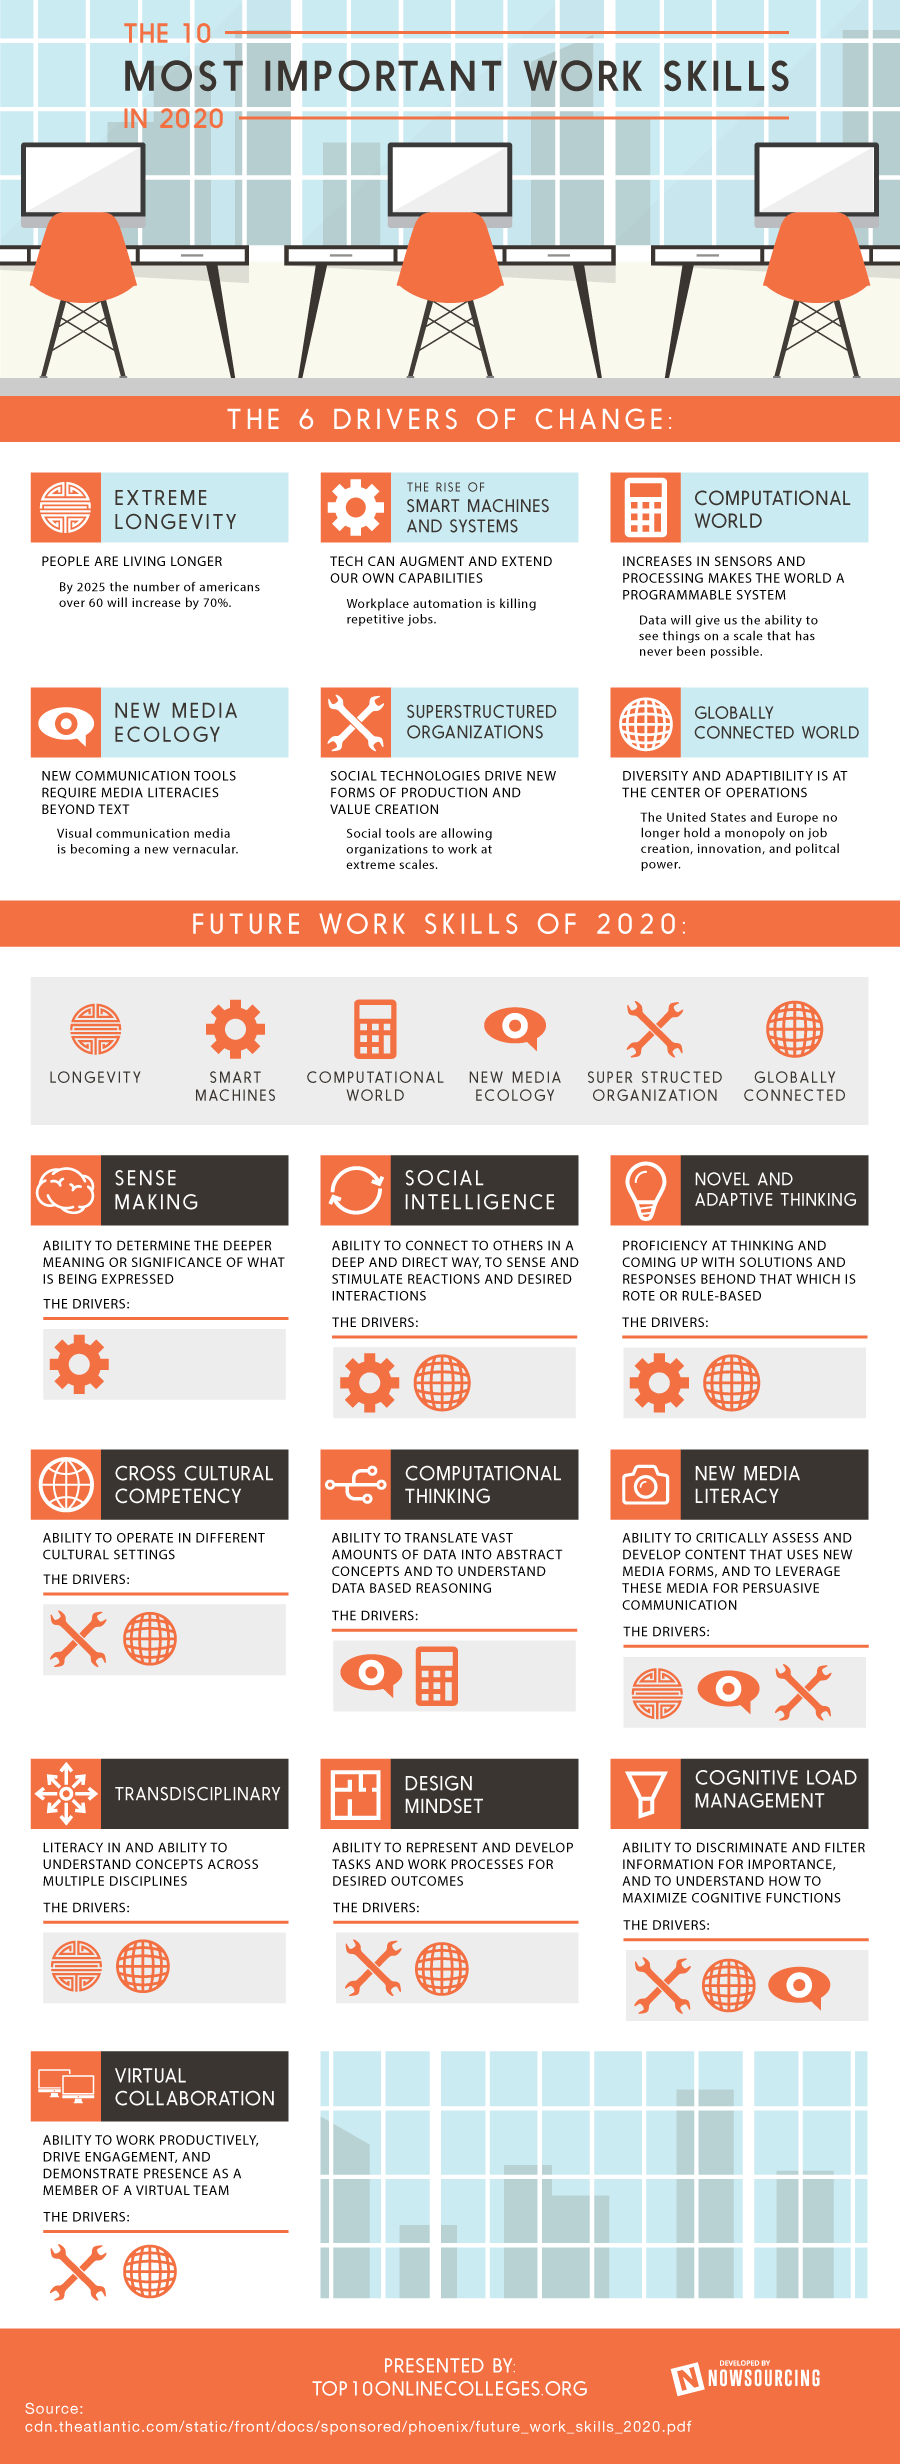 Important Work Skills For 2020 by top10onlinecolleges